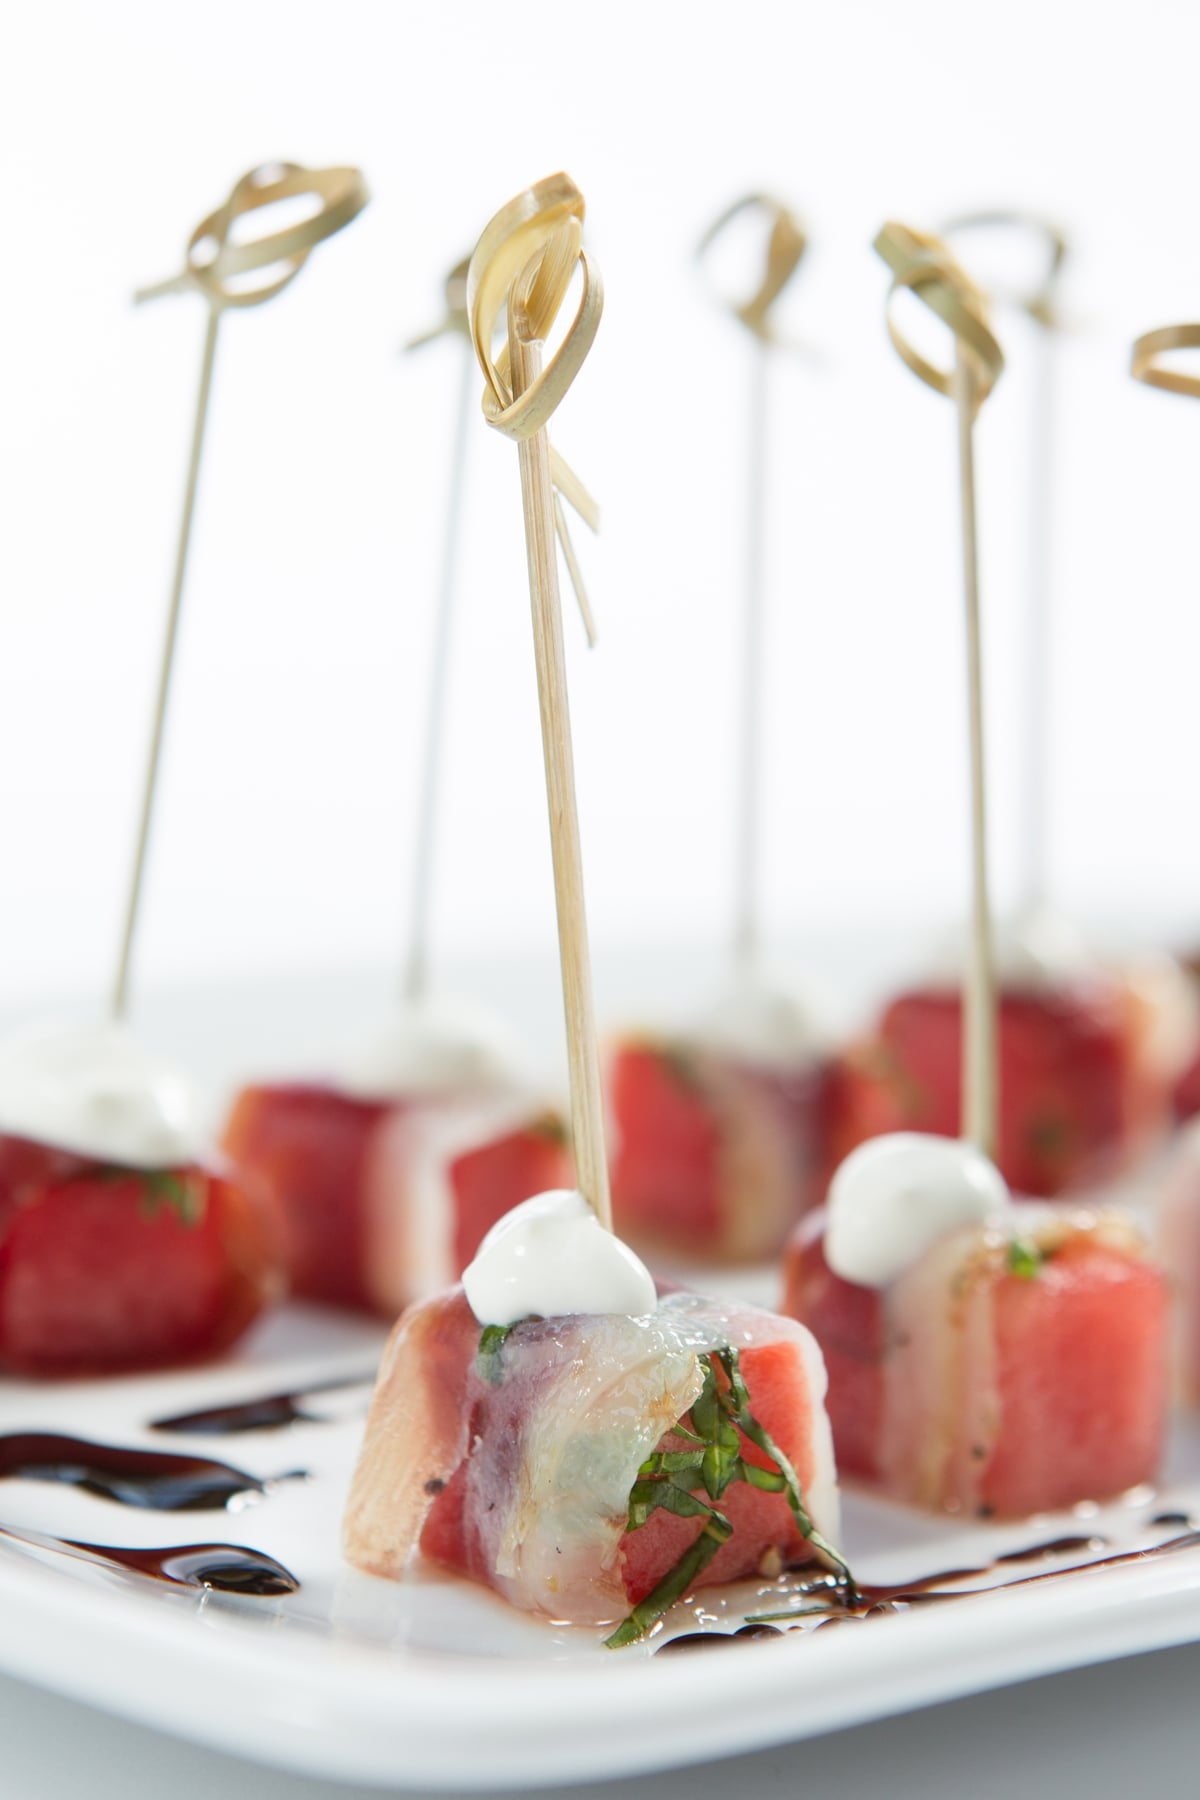 duck-prosciutto-watermelon-basil-balsamic-vinegar_12935507285_o.jpg